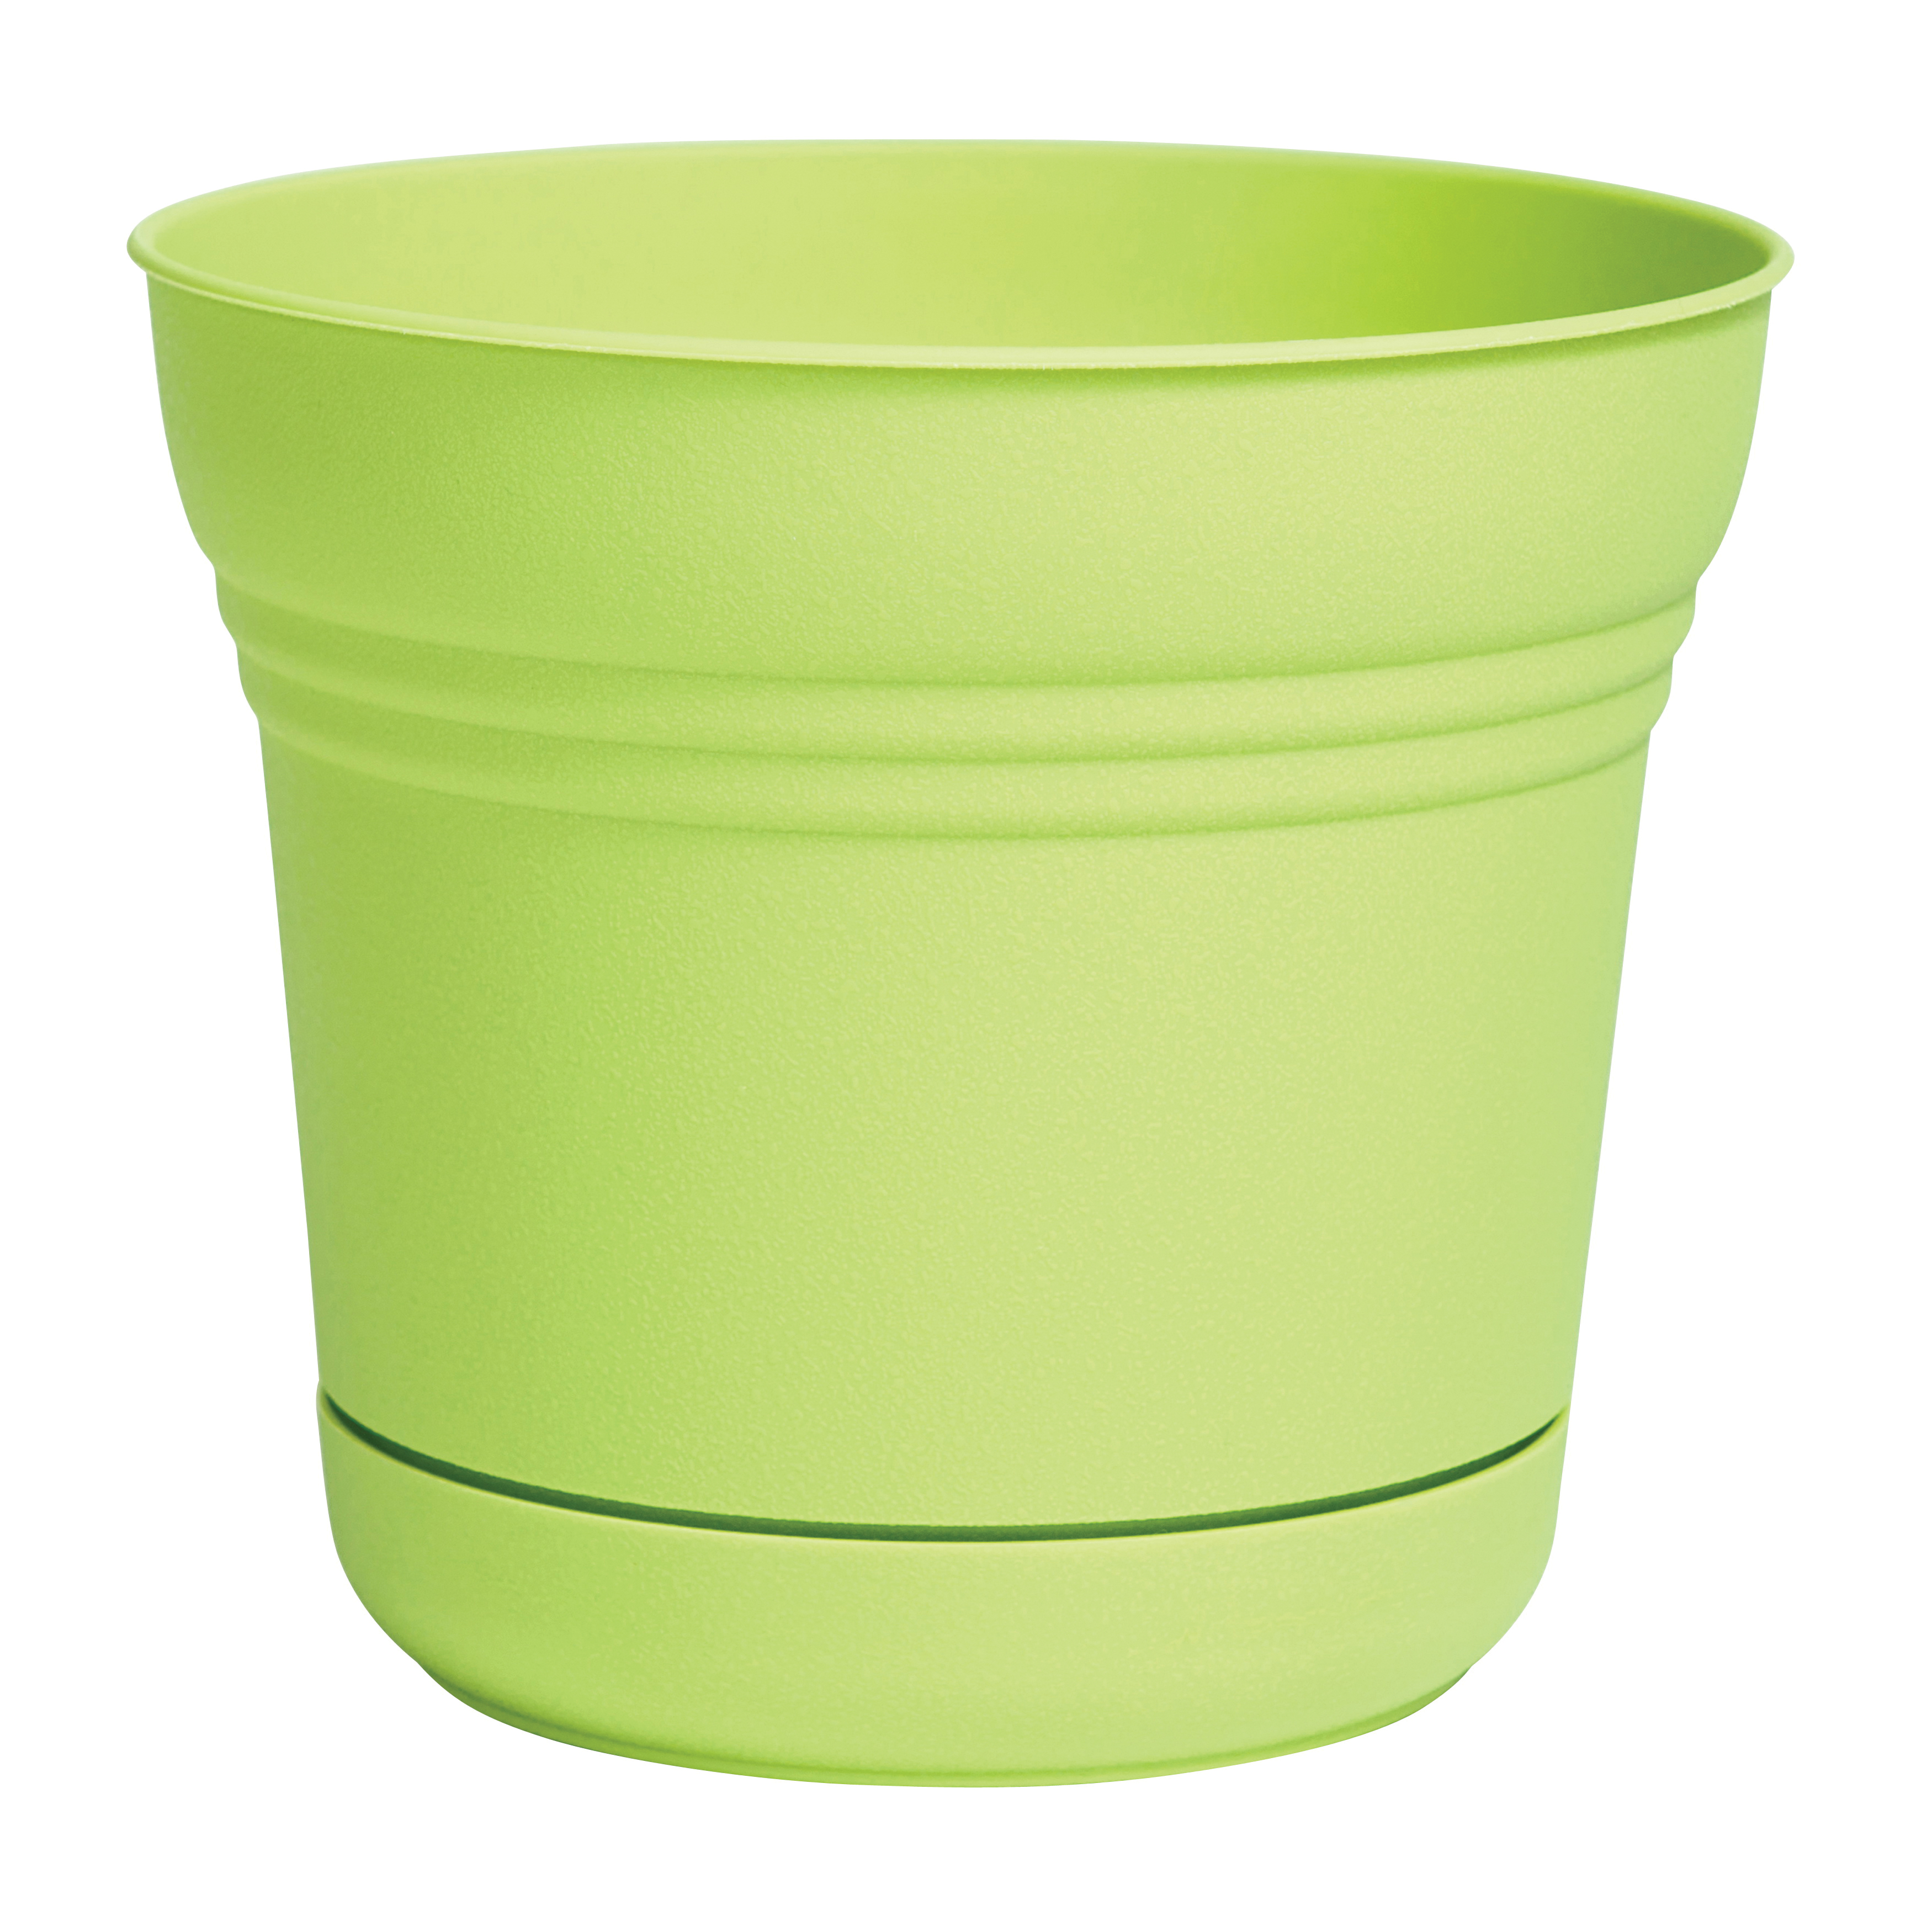 Picture of Bloem SP1025 Saturn Planter, 9.8 in W, Bell, Plastic, Honey Dew, Matte